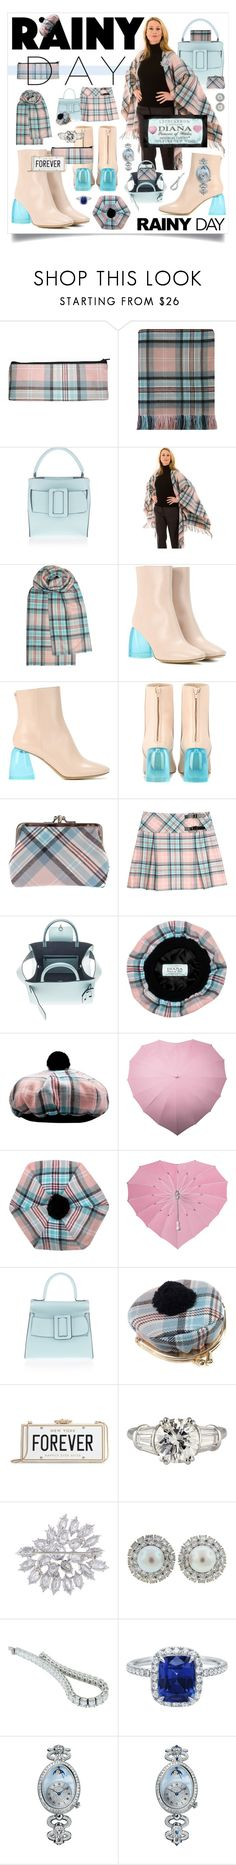 """Princess Diana,  Memorial Rose Tartan."" by haikuandkysses ❤ liked on Polyvore featuring Boyy, E L L E R Y, Kate Spade, Harry Winston, Breguet, rainyday, tartan, Memorial_Rose_Tartan, pink_and_blue and Princess_Diana"